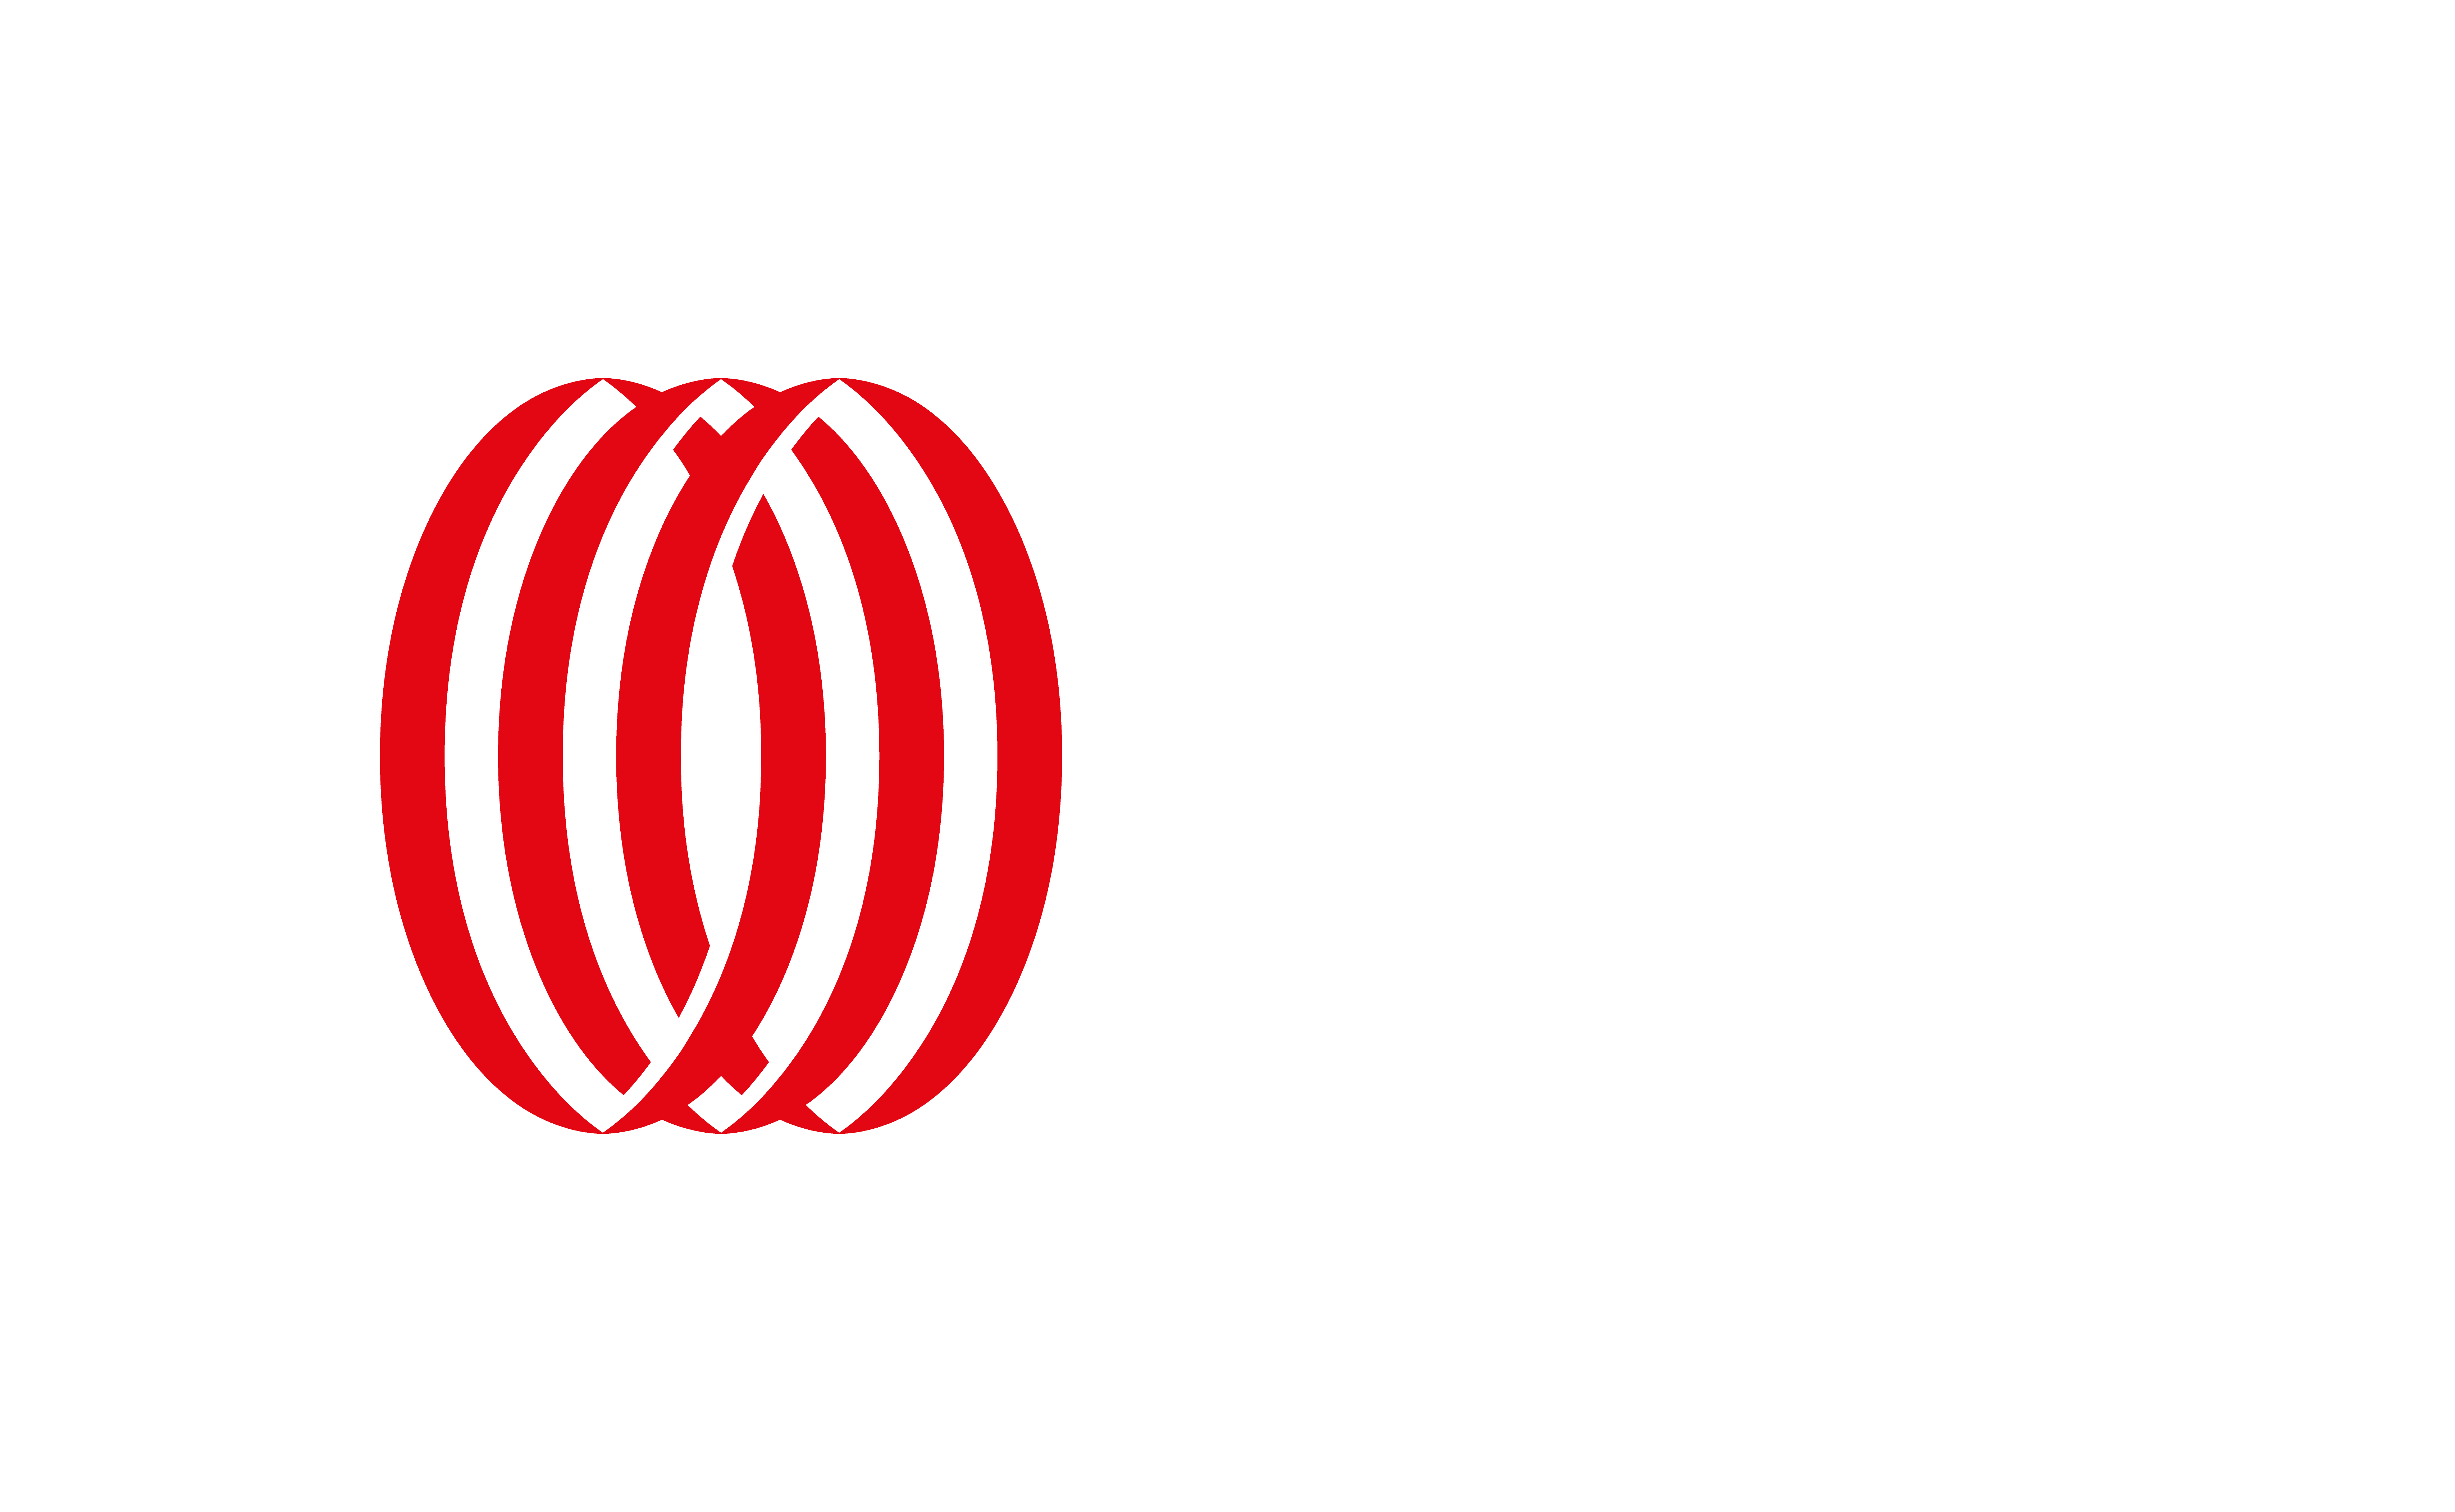 We are JLL.